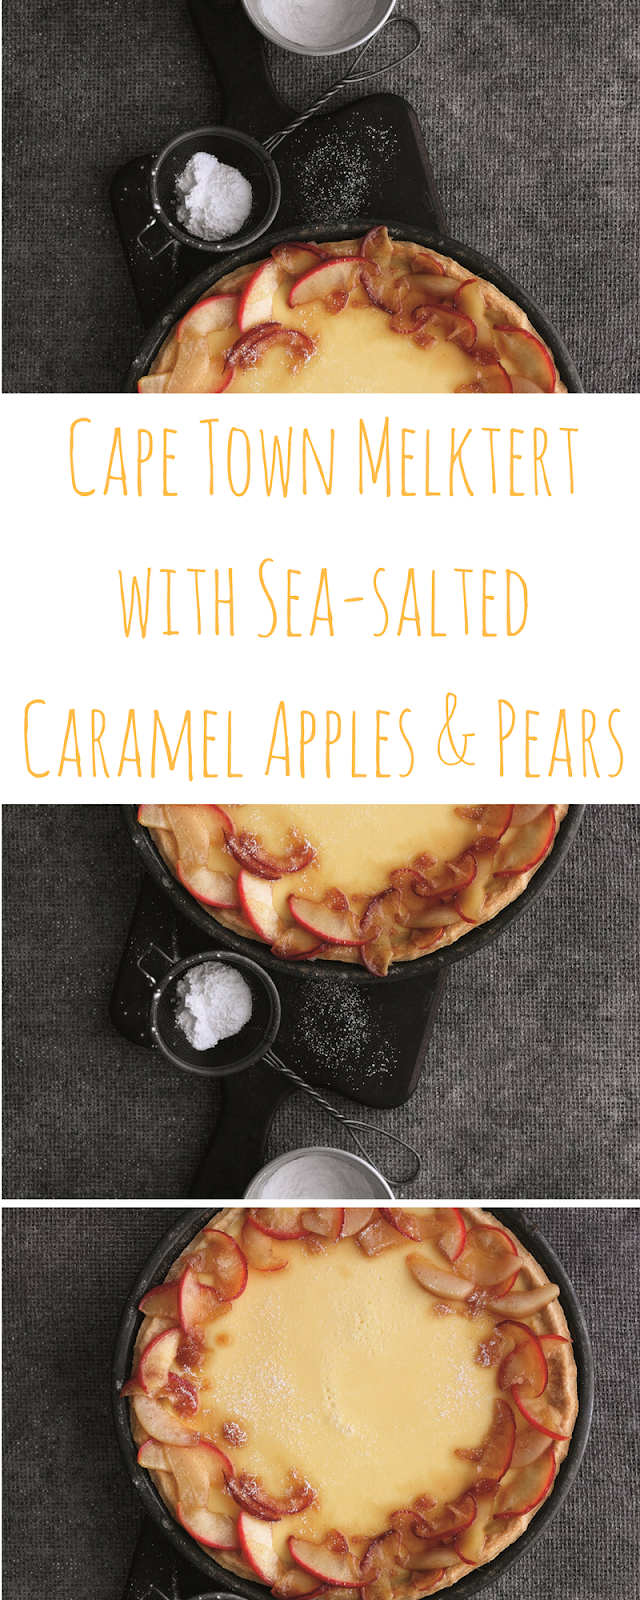 Cape Town Melktert with Sea-salted Caramel Apples And Pears